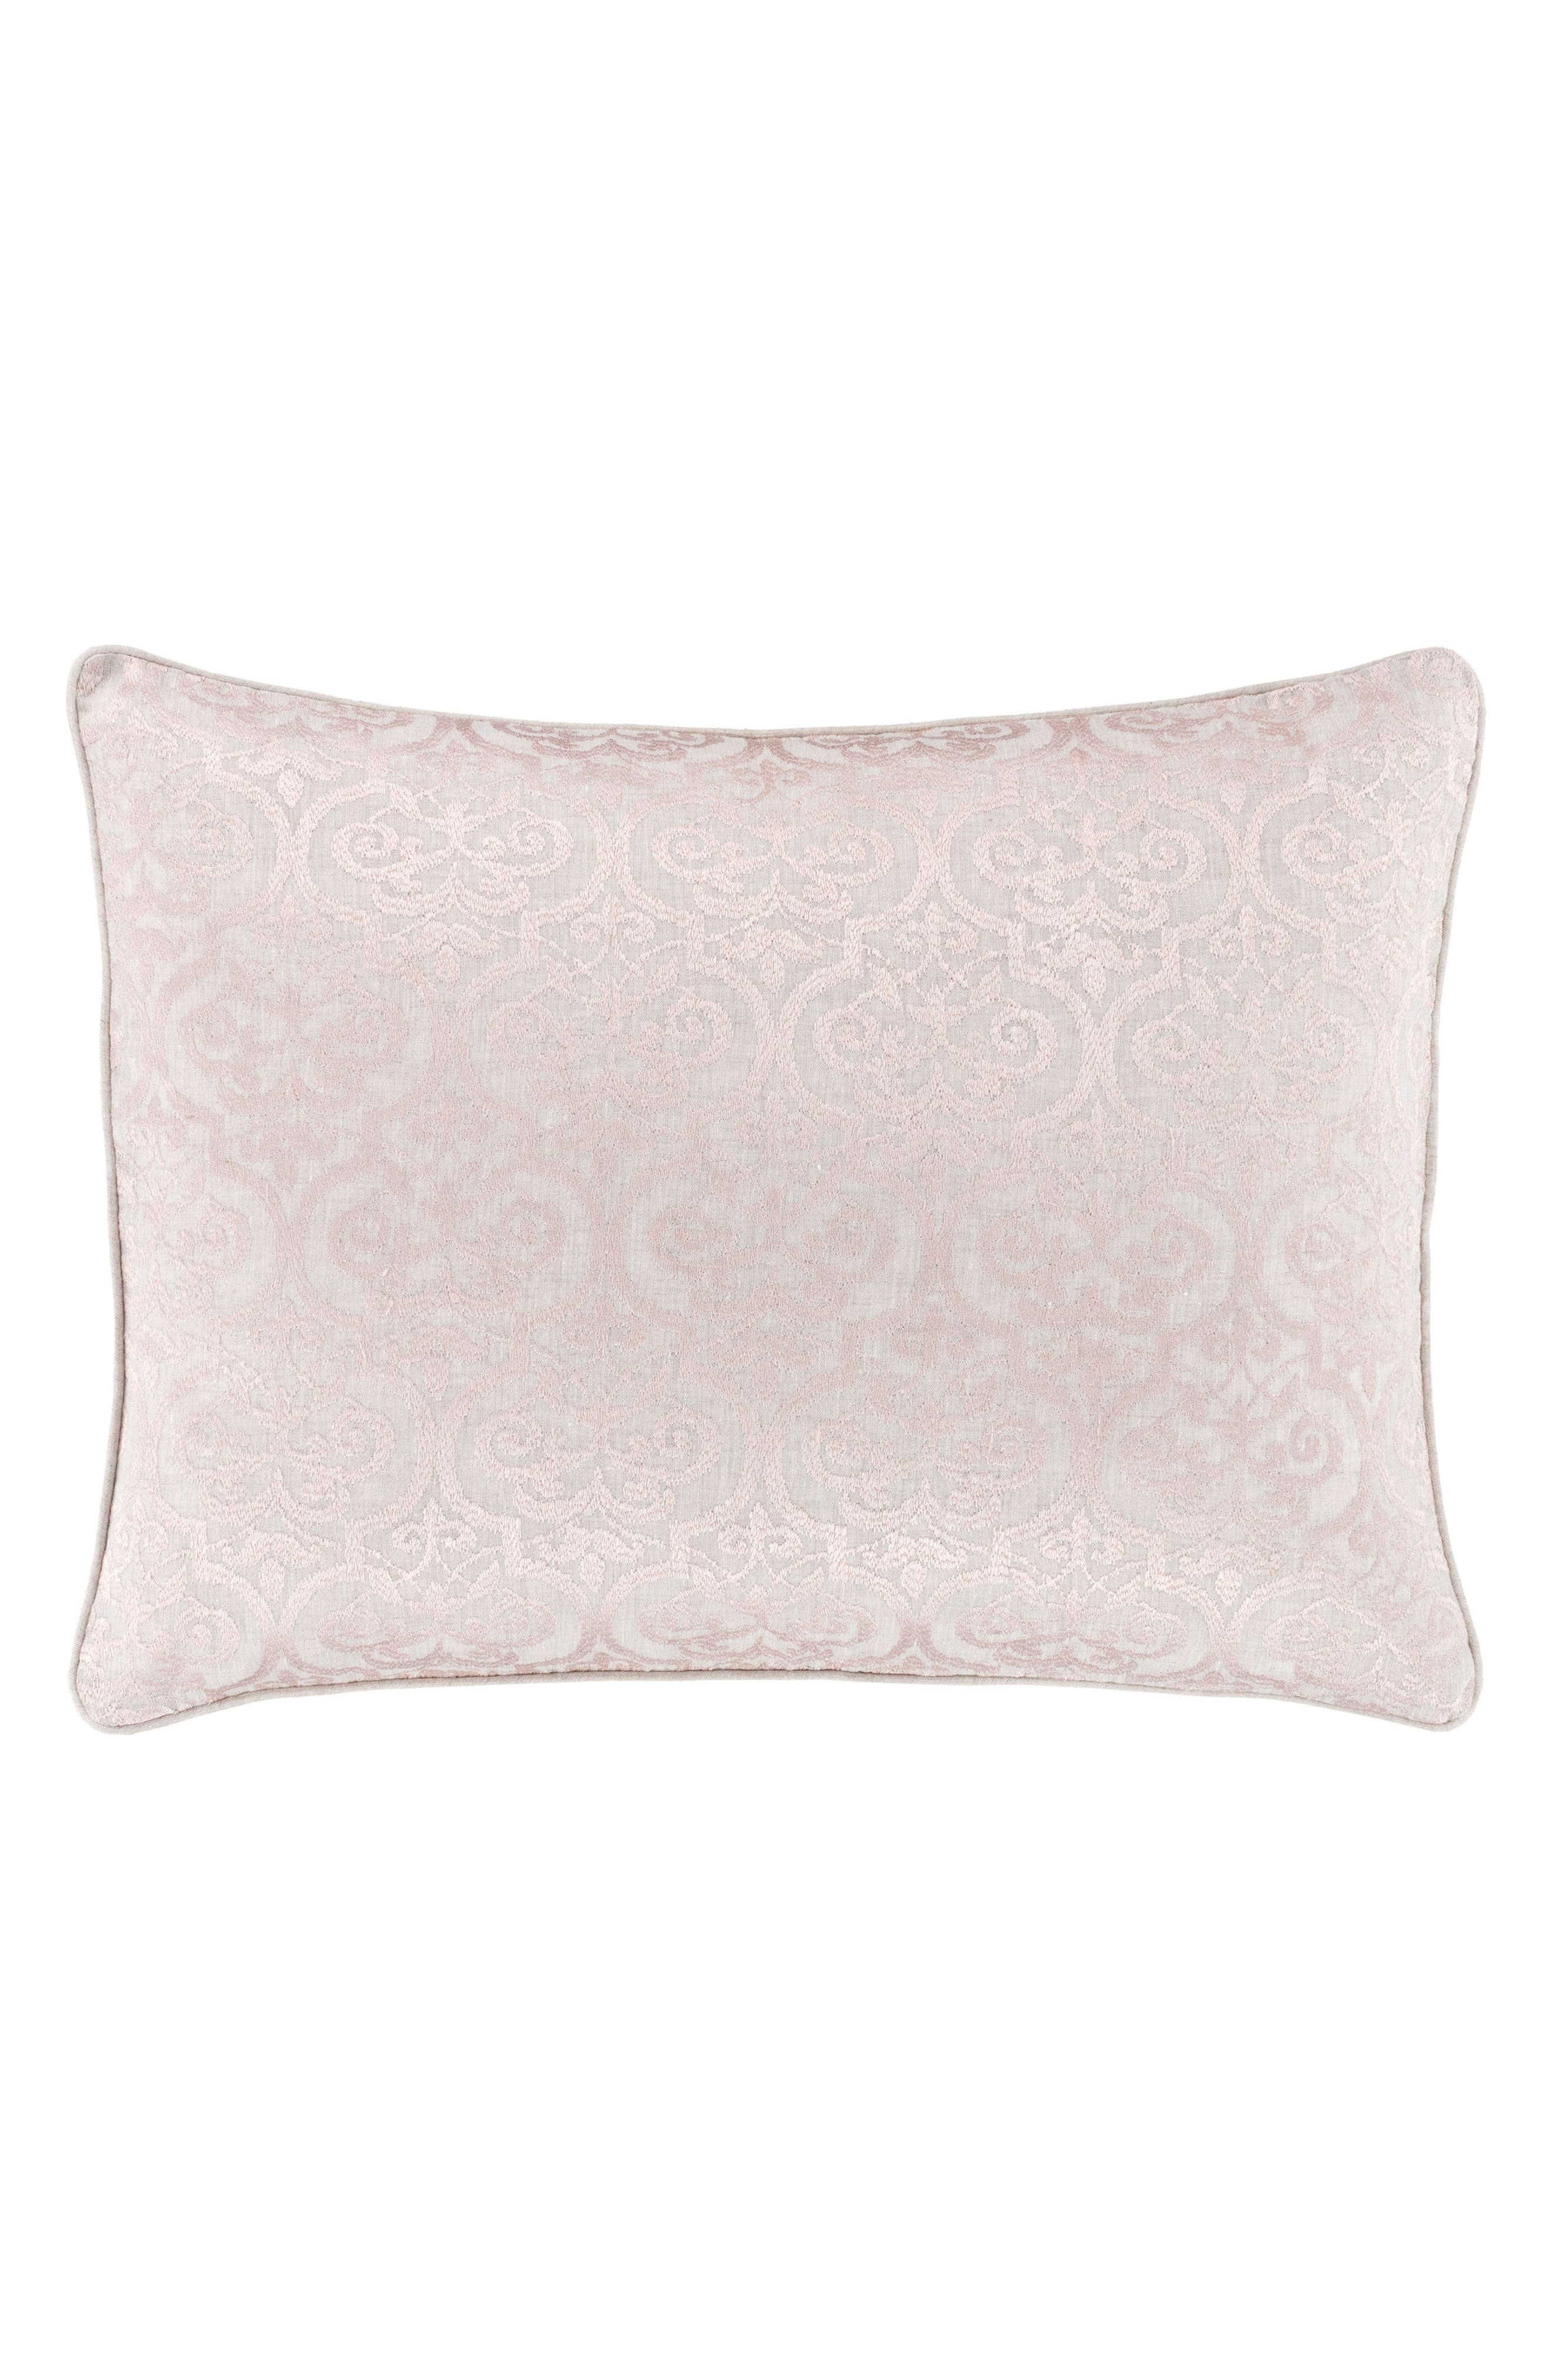 Gwendolyn Embroidered Linen Sham,                         Main,                         color, Pink